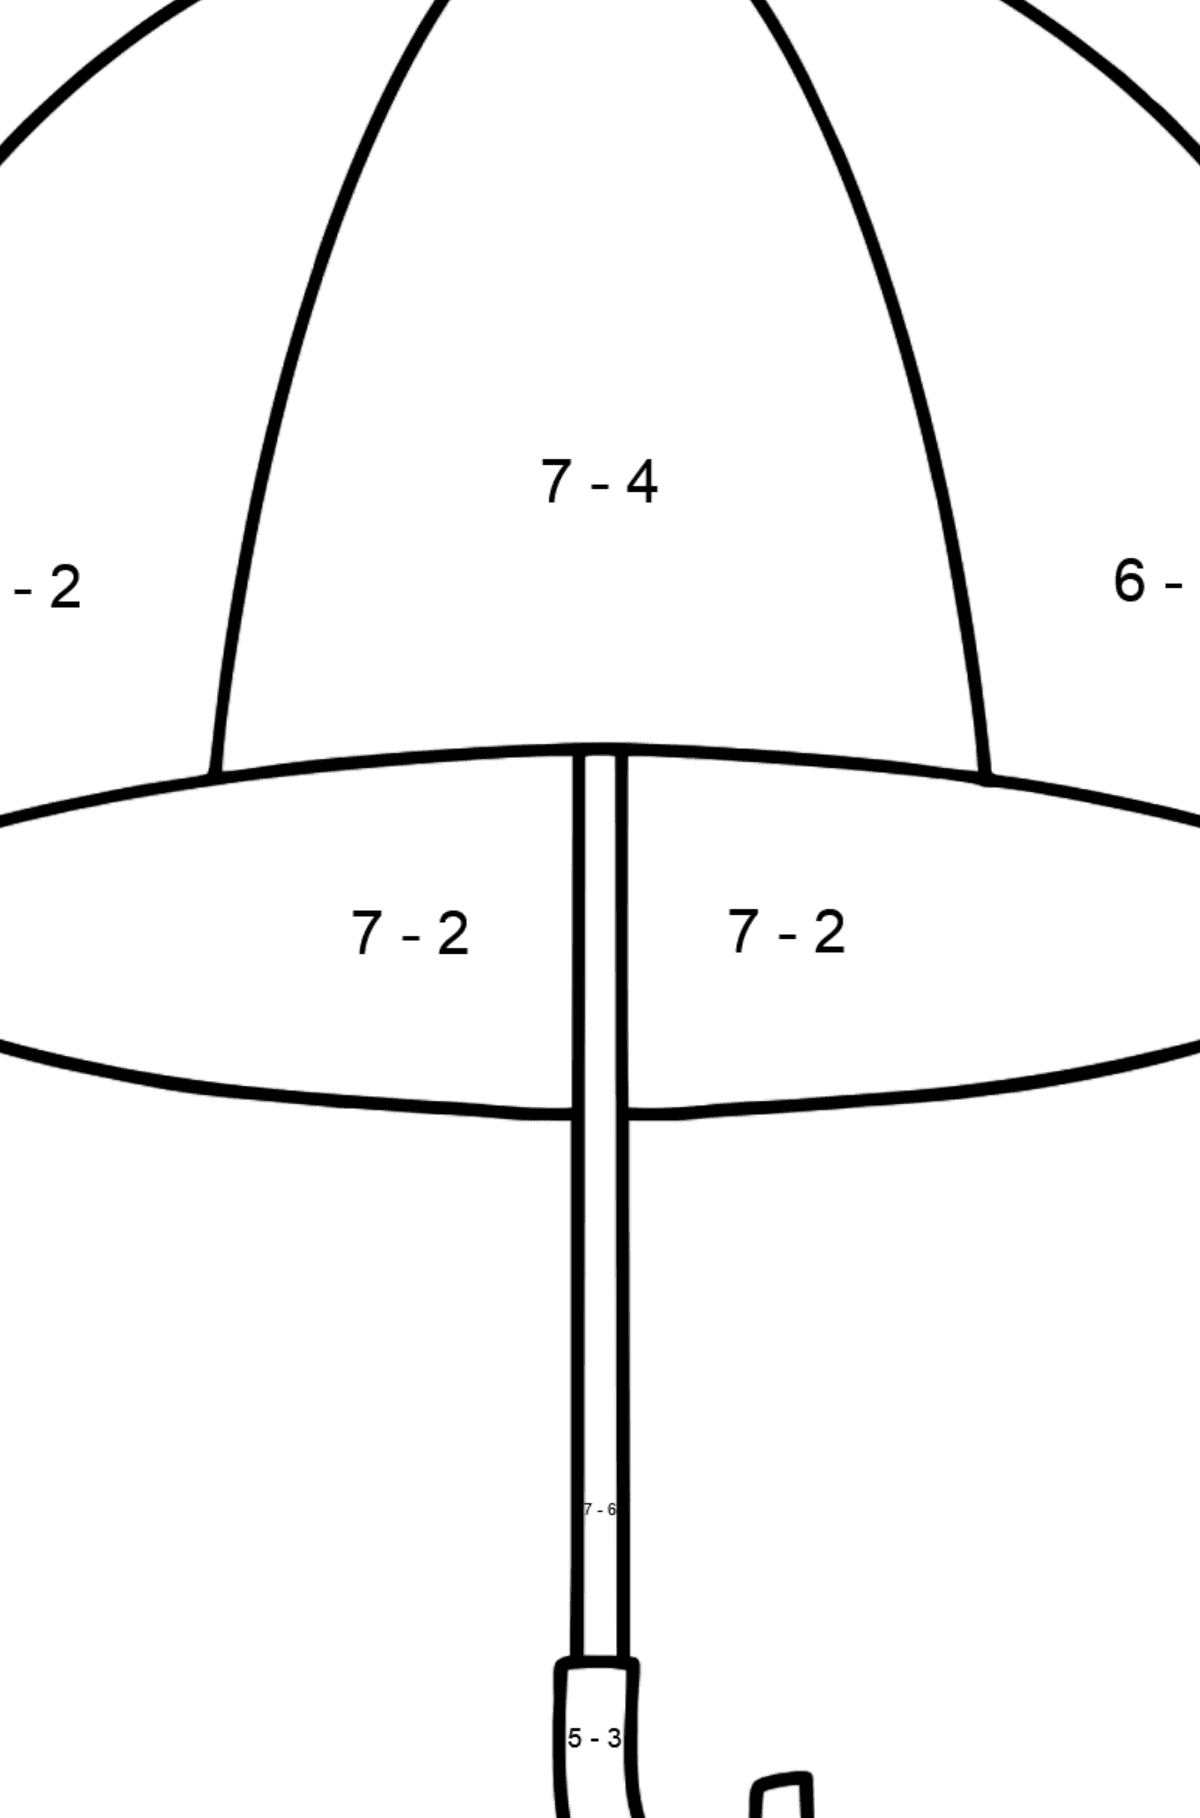 Umbrella coloring page - Math Coloring - Subtraction for Kids